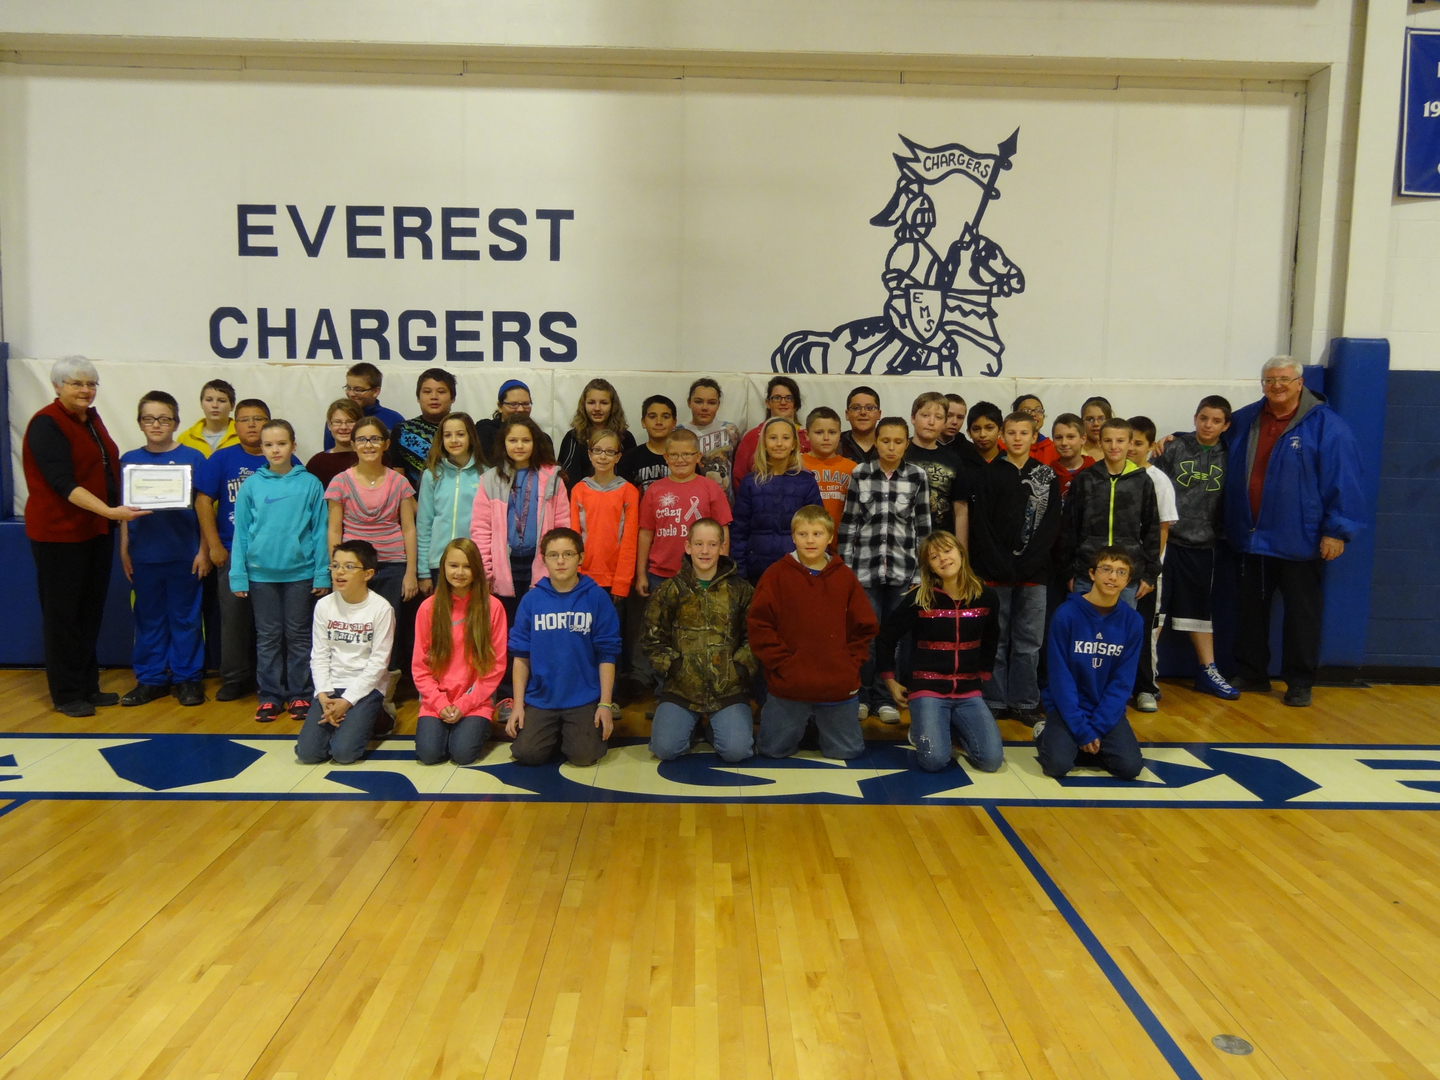 Kansas brown county everest -  Our Vision Is For A Safe And Healthy Community For Our Youth And Families To Thrive